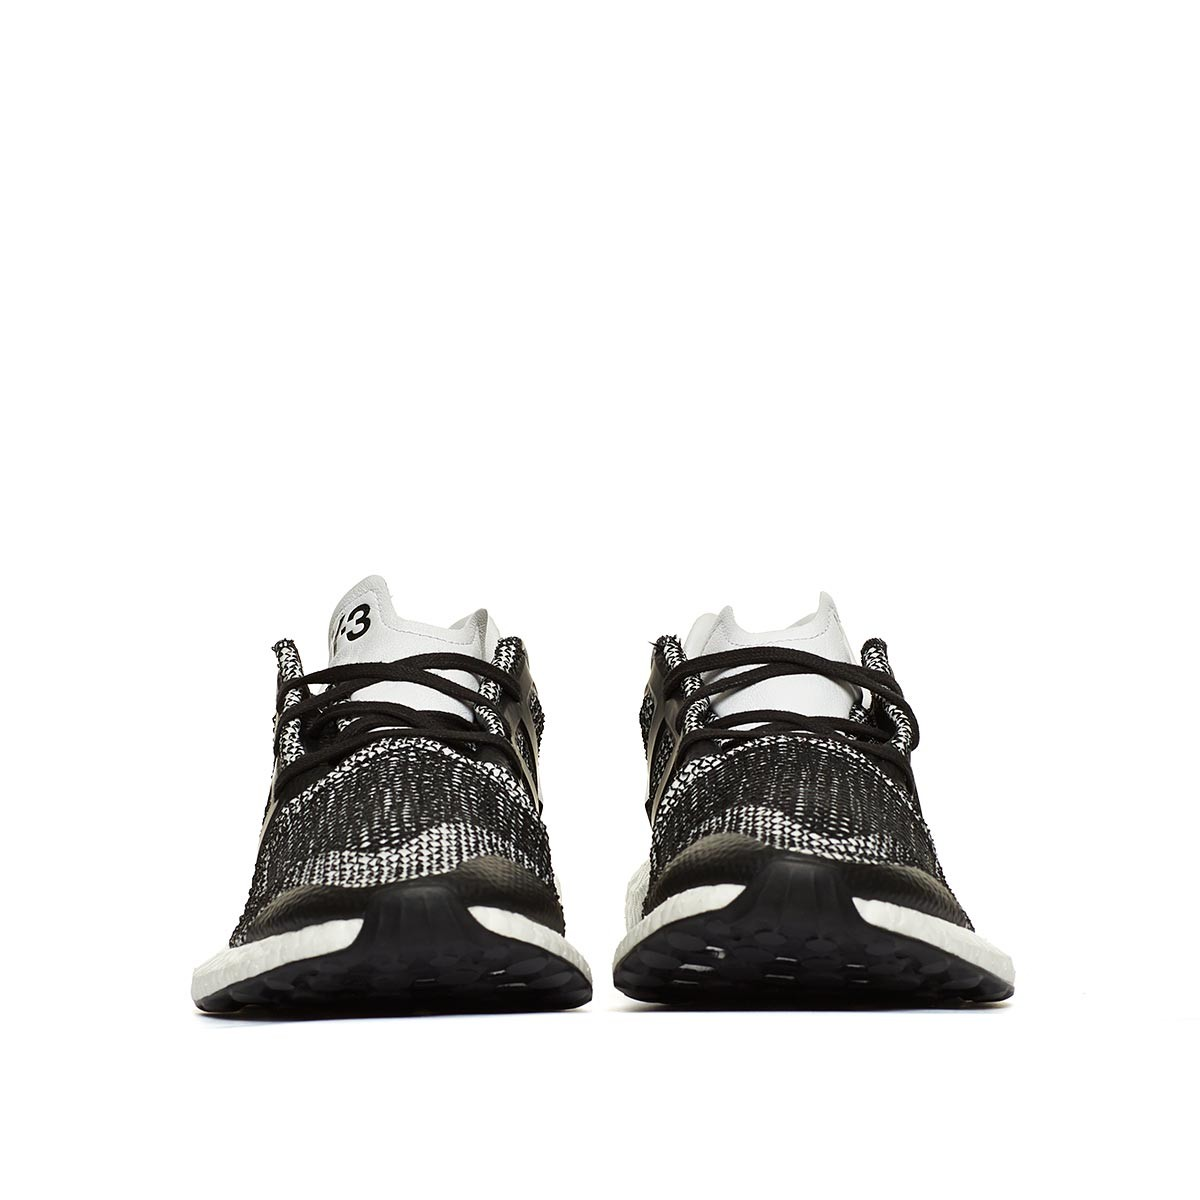 y3-pure-boost-zg-knit-grey-triple-black-release-2017aw